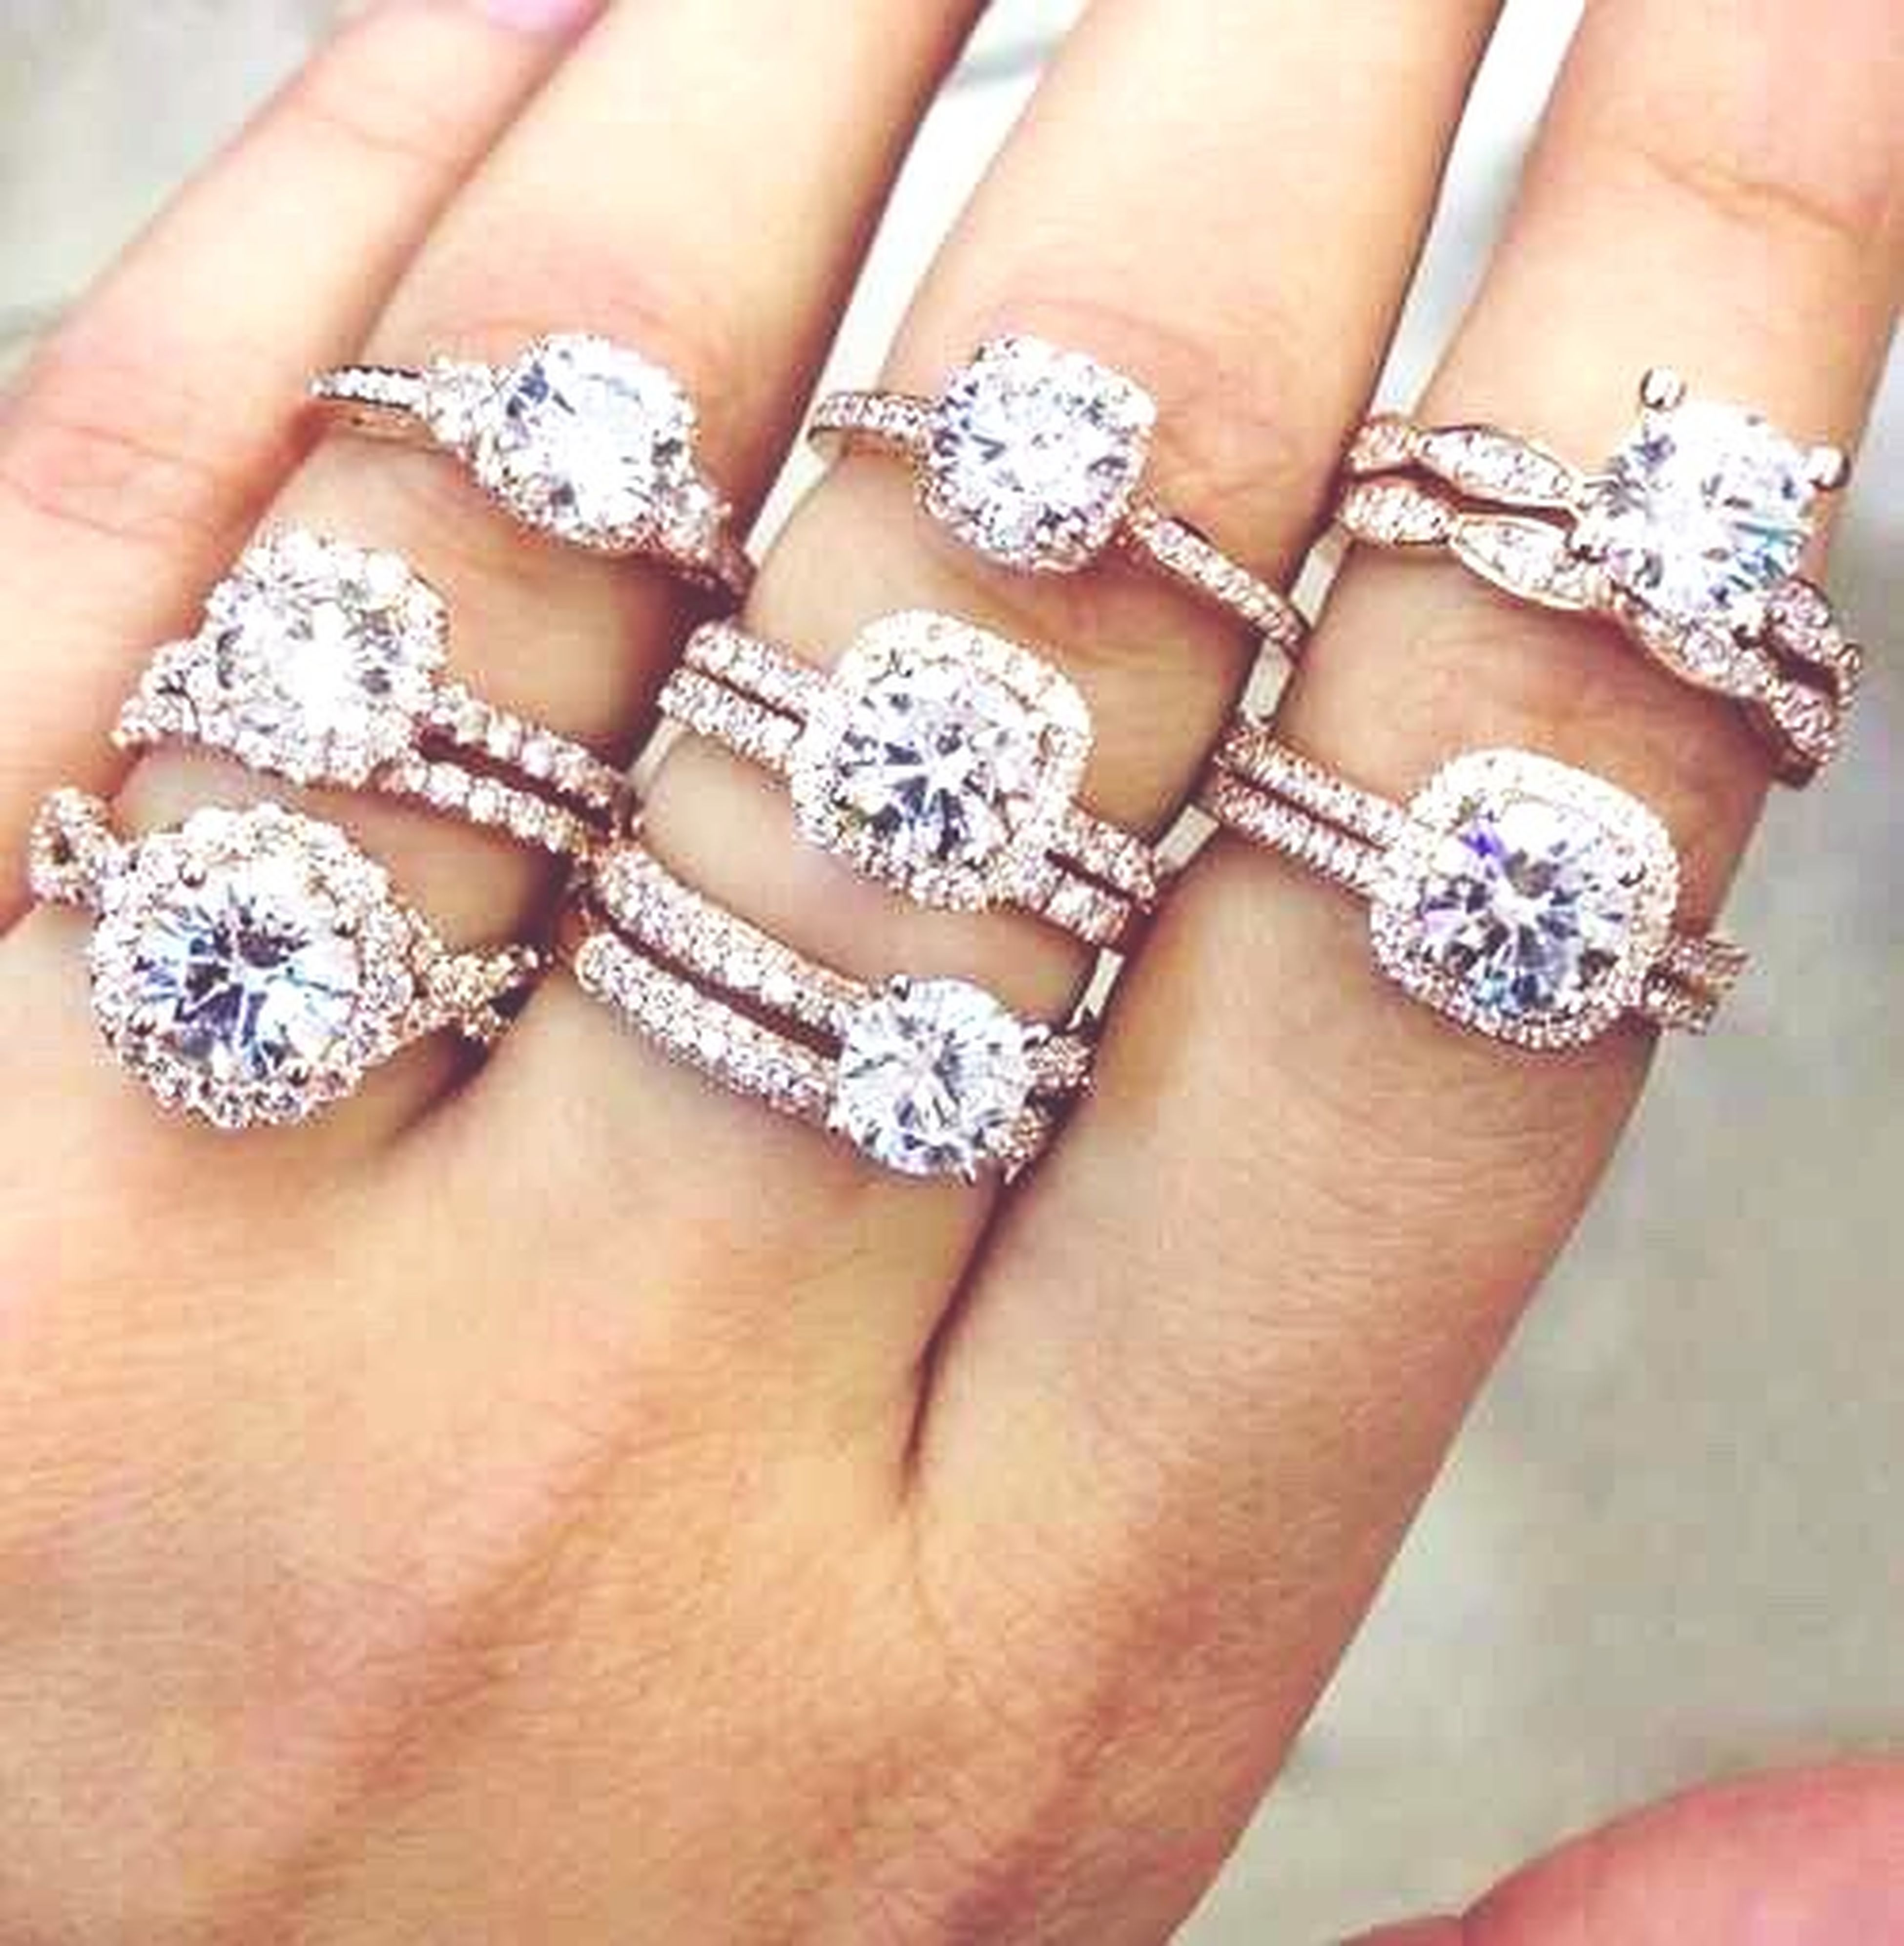 Rich Luxury Luxury Rings Diamonds Rings Luxe Luxurylifestyle